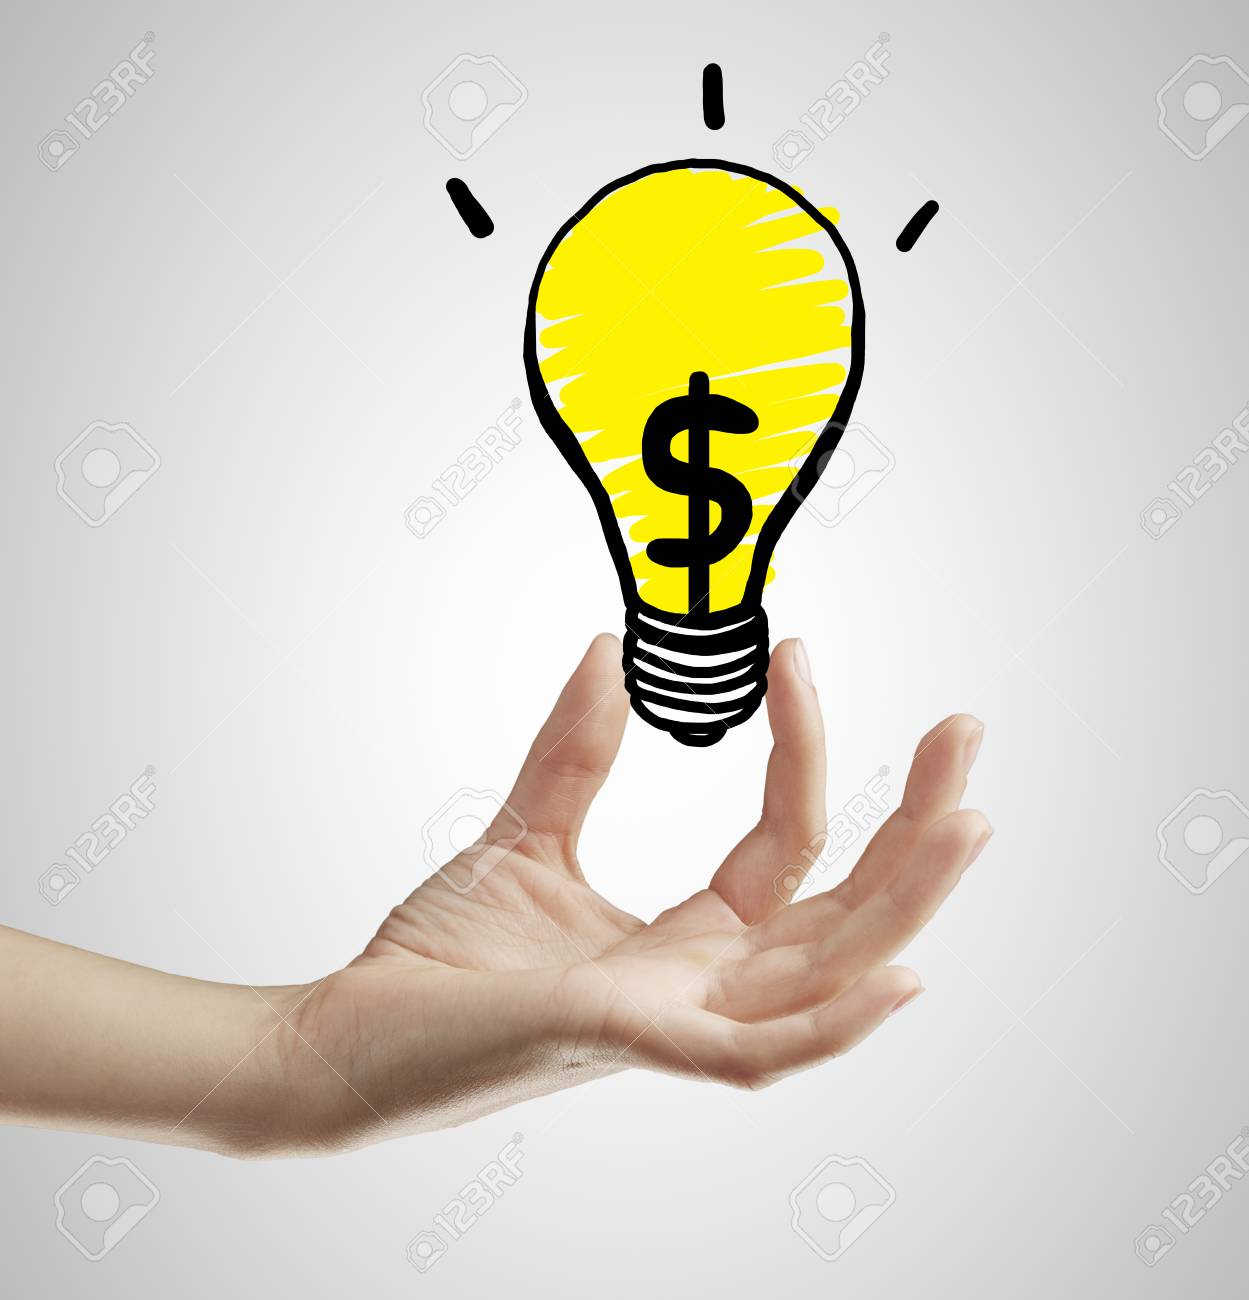 hand holding lamp with dollar sign Stock Photo - 22471069